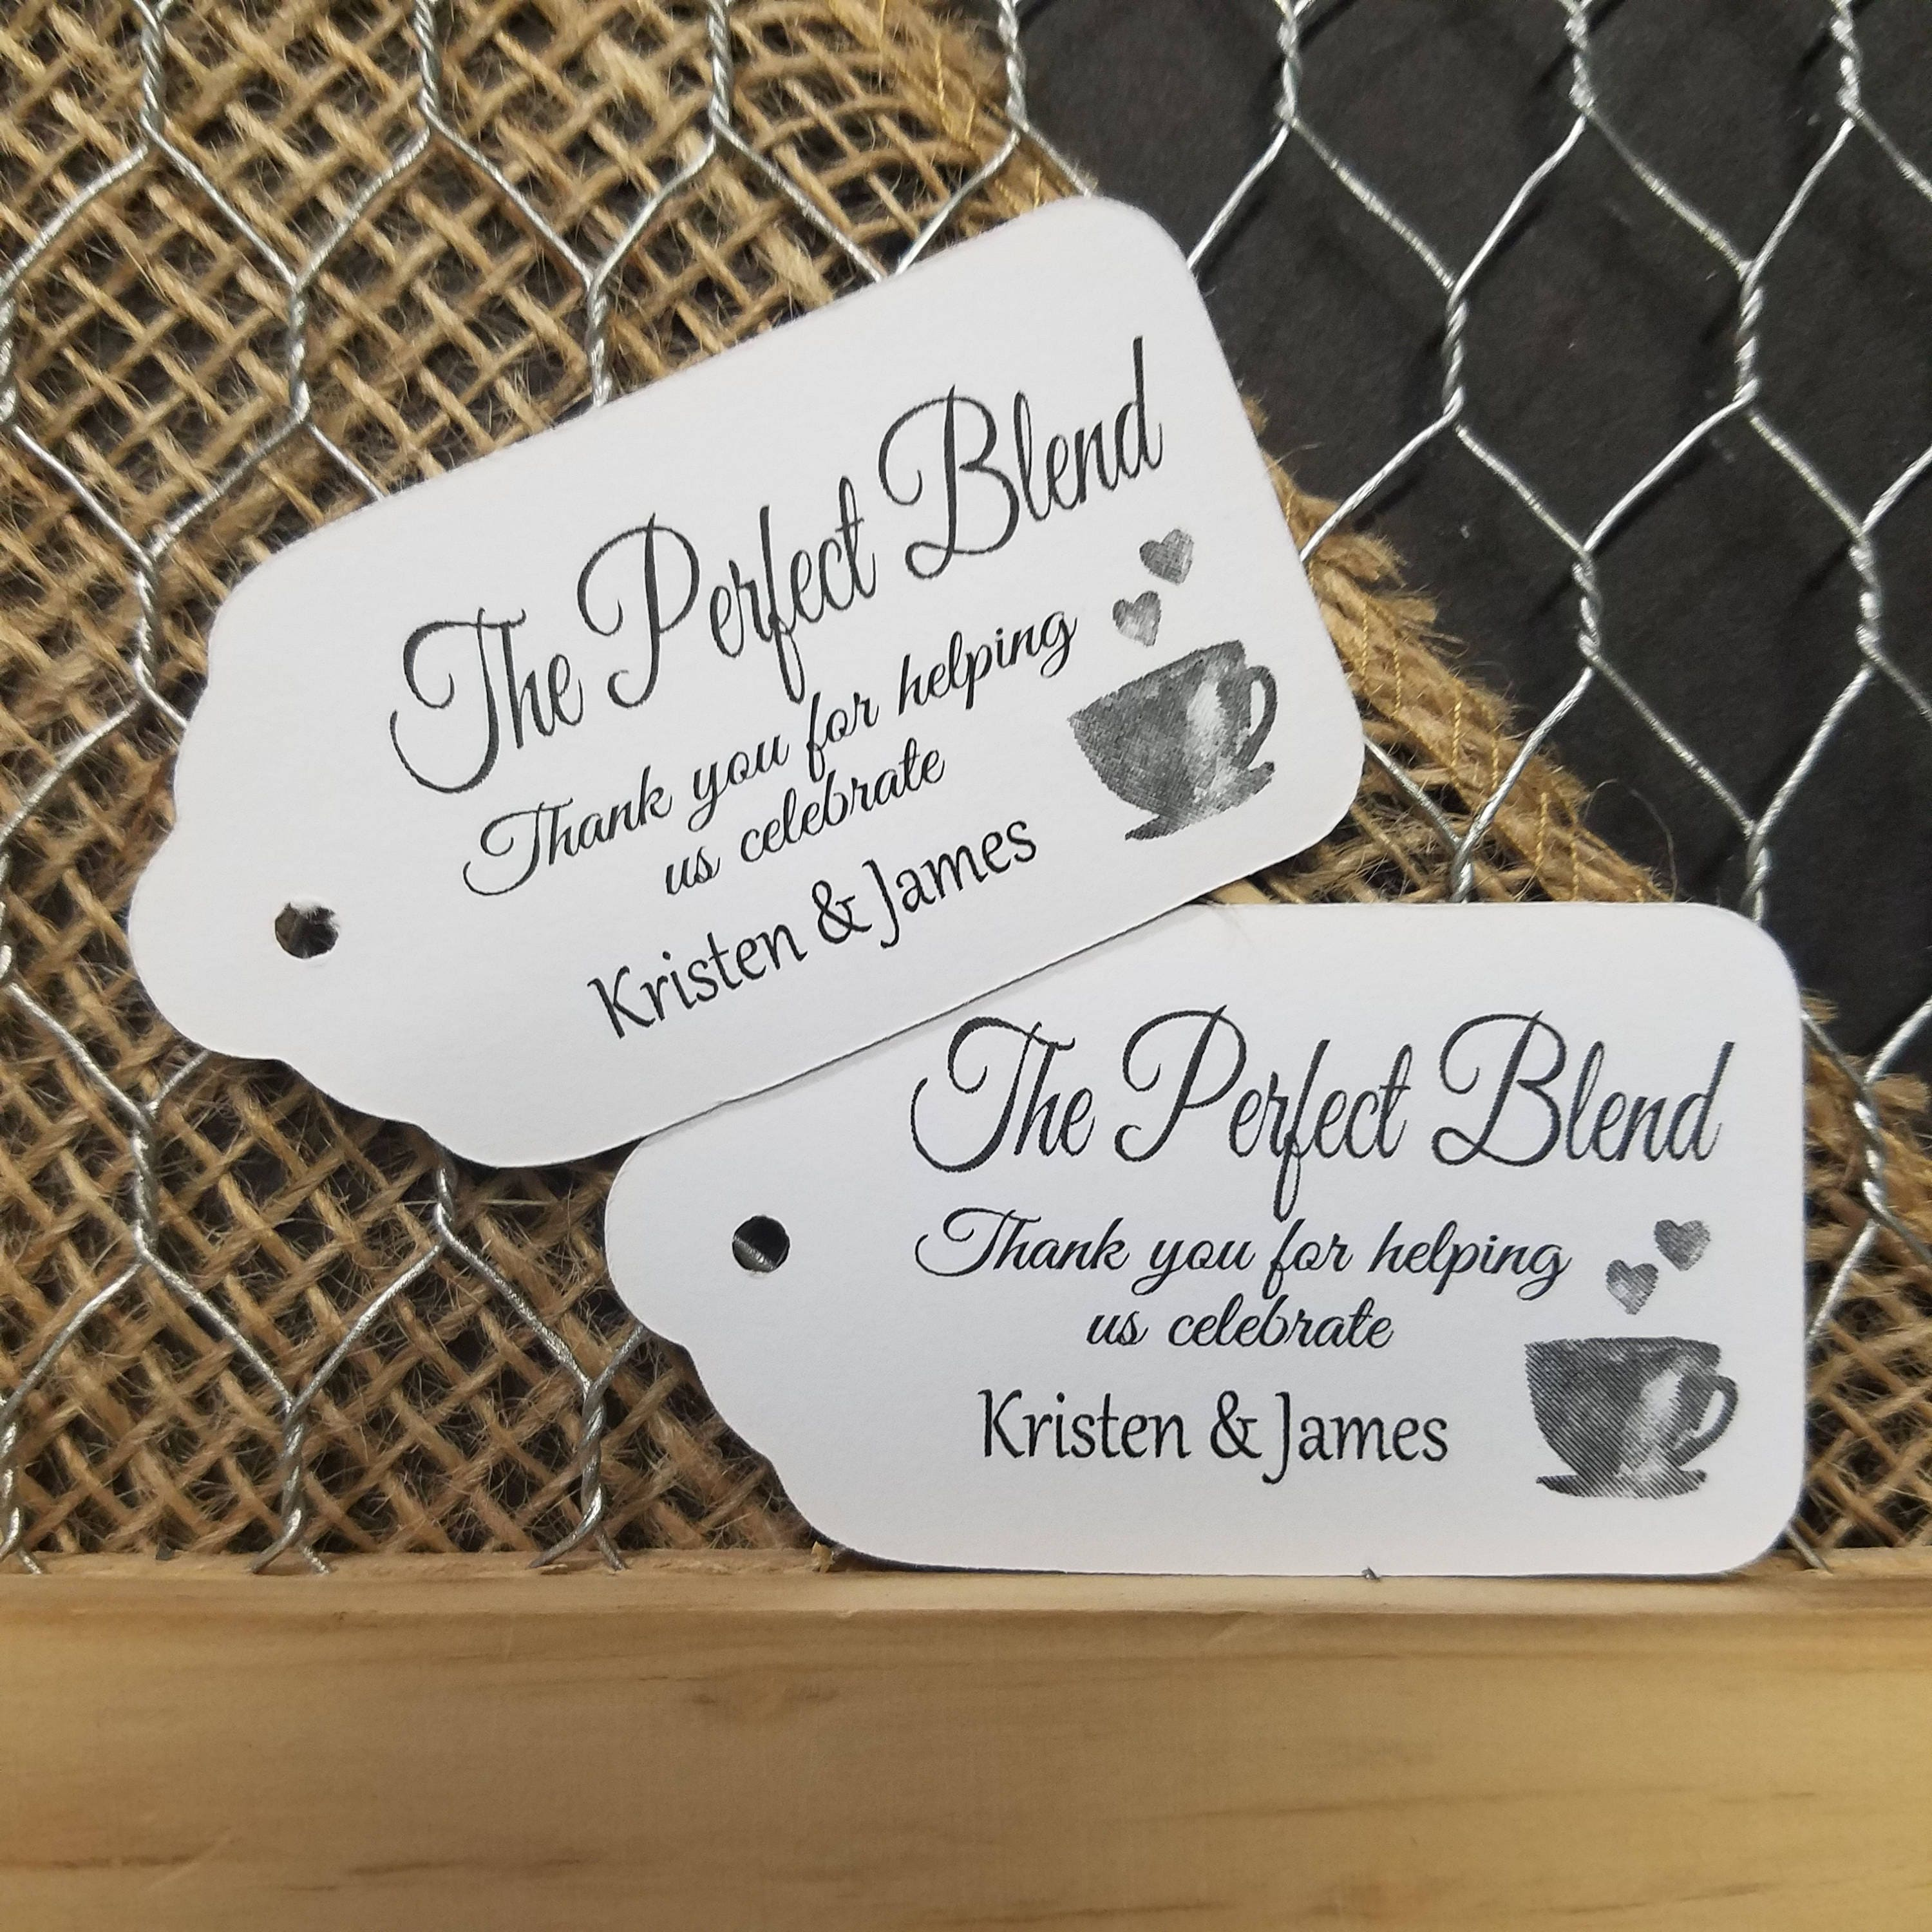 the perfect blend wedding favors - Wedding Decor Ideas